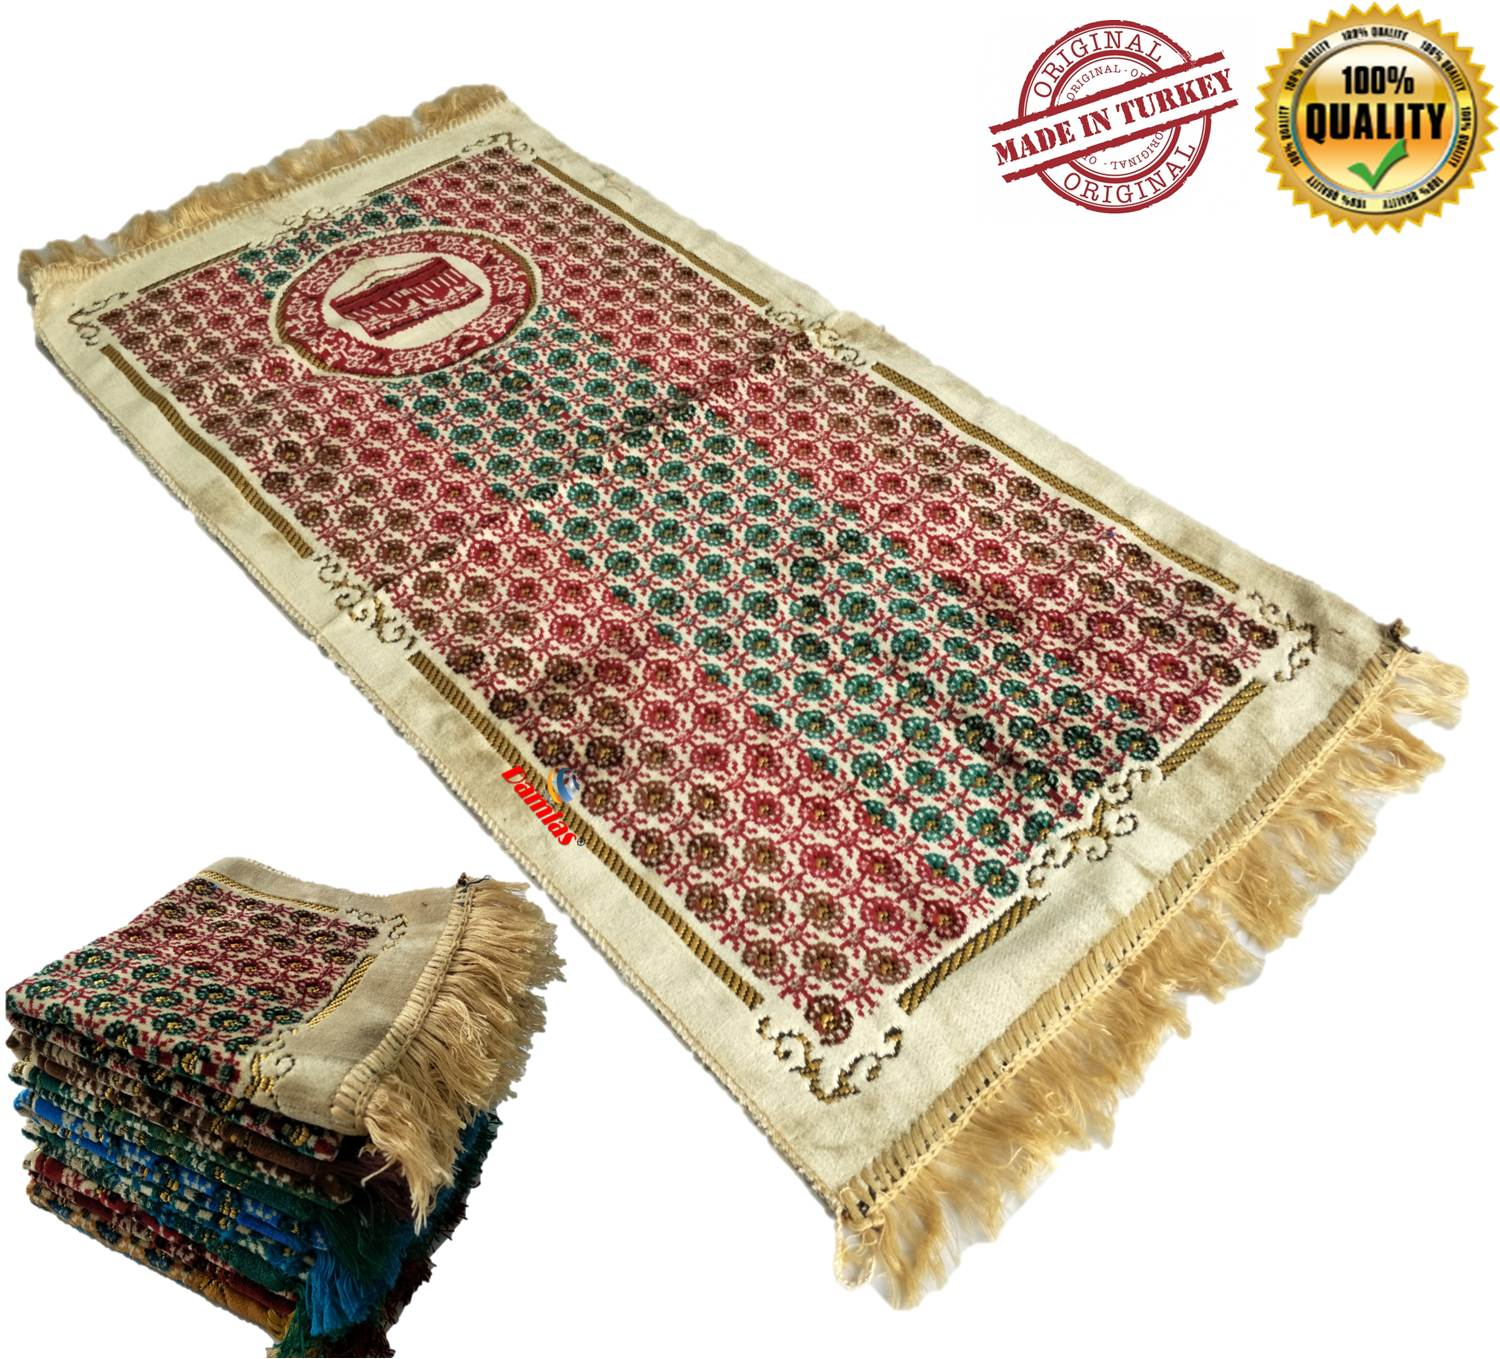 Sejadah Turki Turkey Prayer Mat sulam 112 cm x 53 cm x 4mm